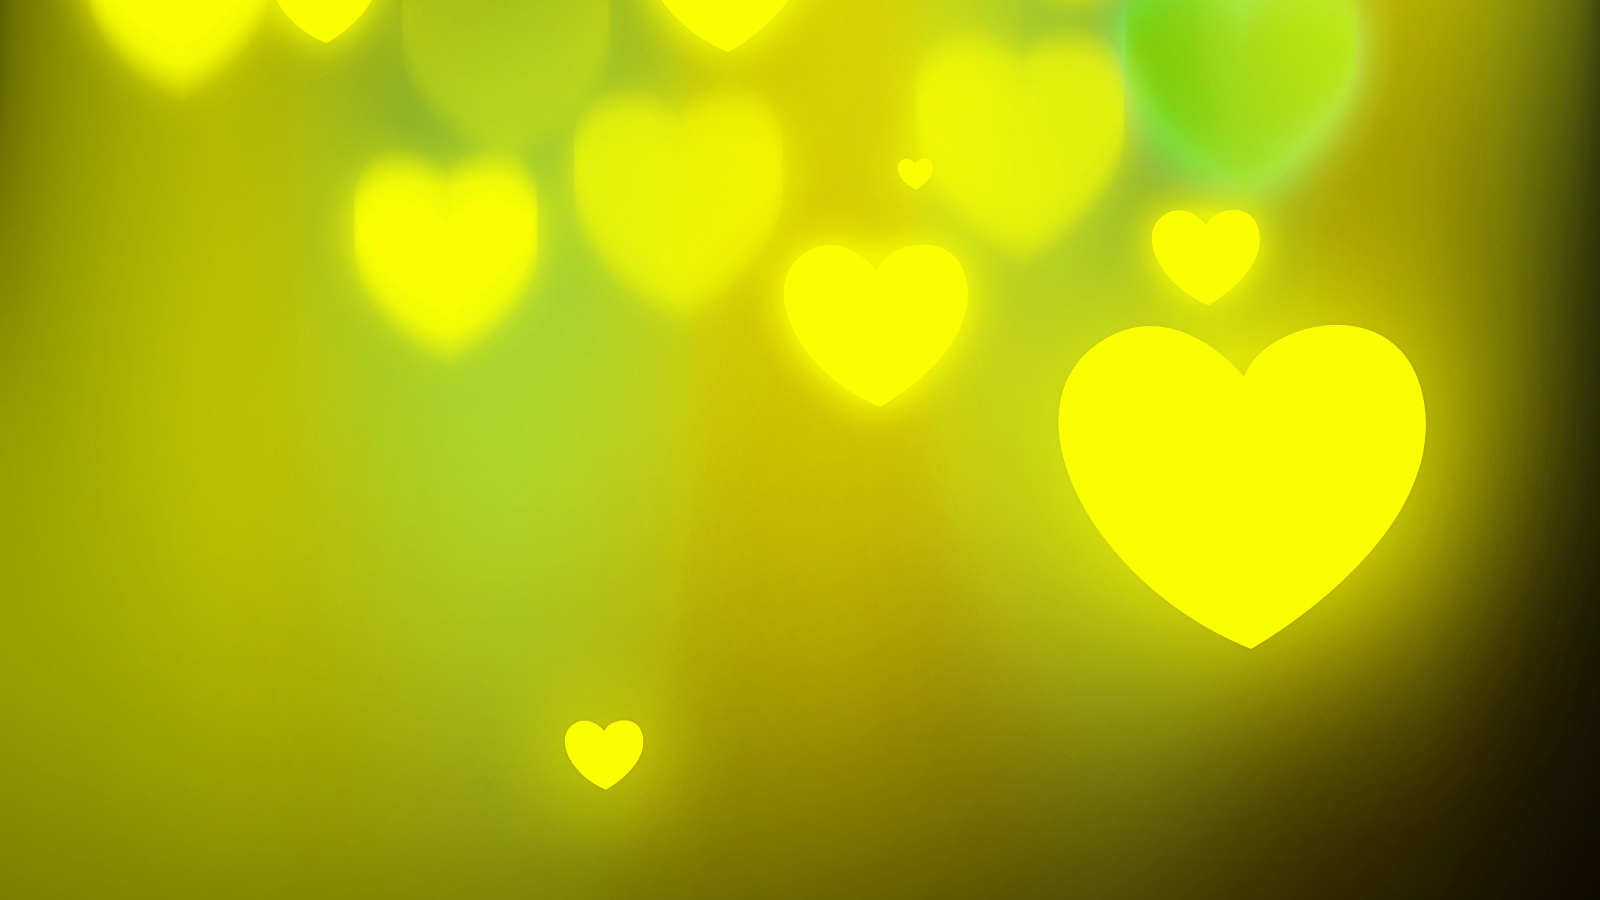 Free Glowing Hearts Yellow Green Background